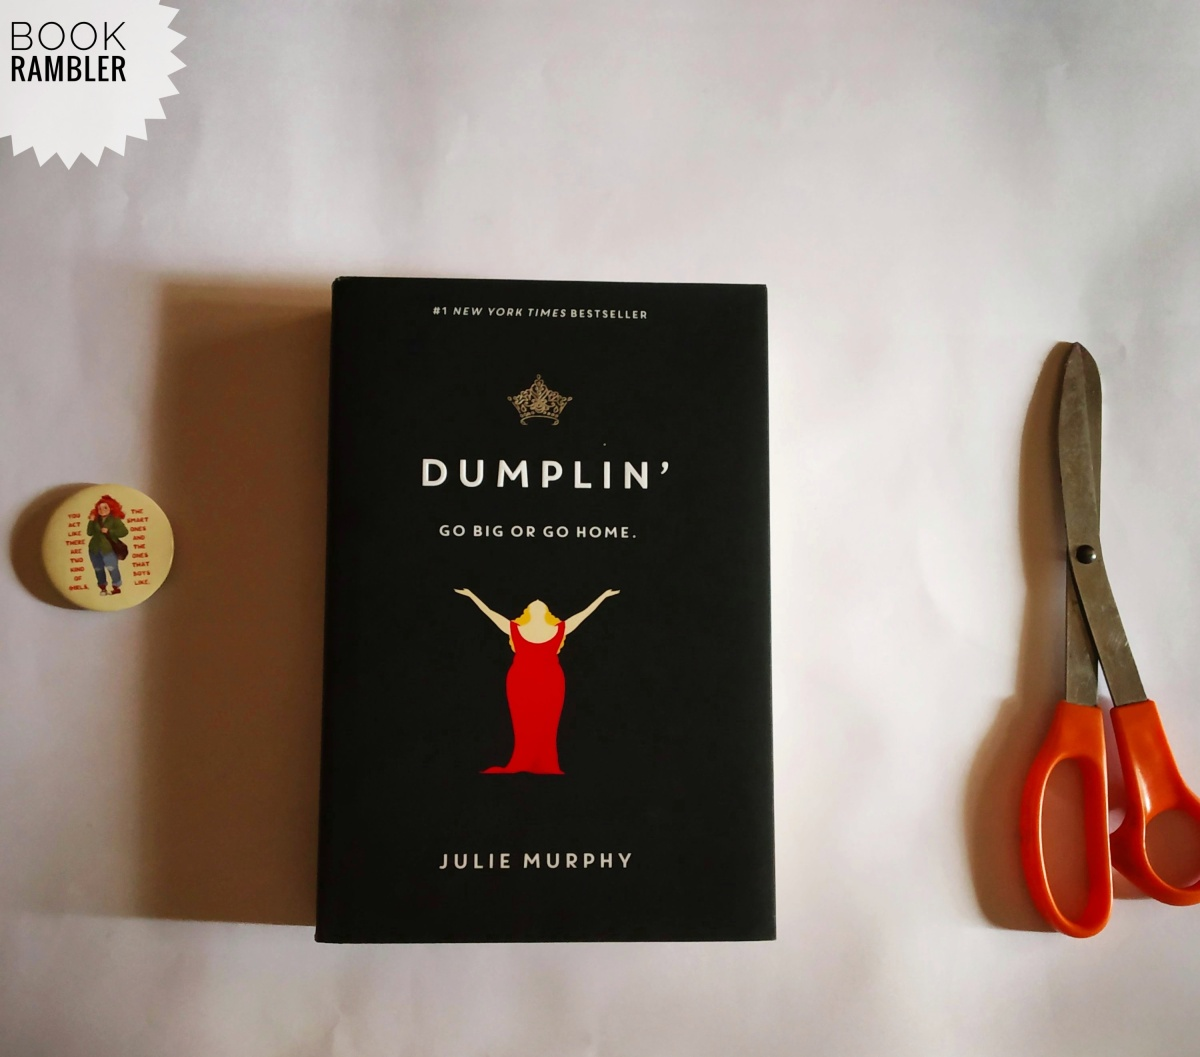 Dumplin' is a downer with greatwriting